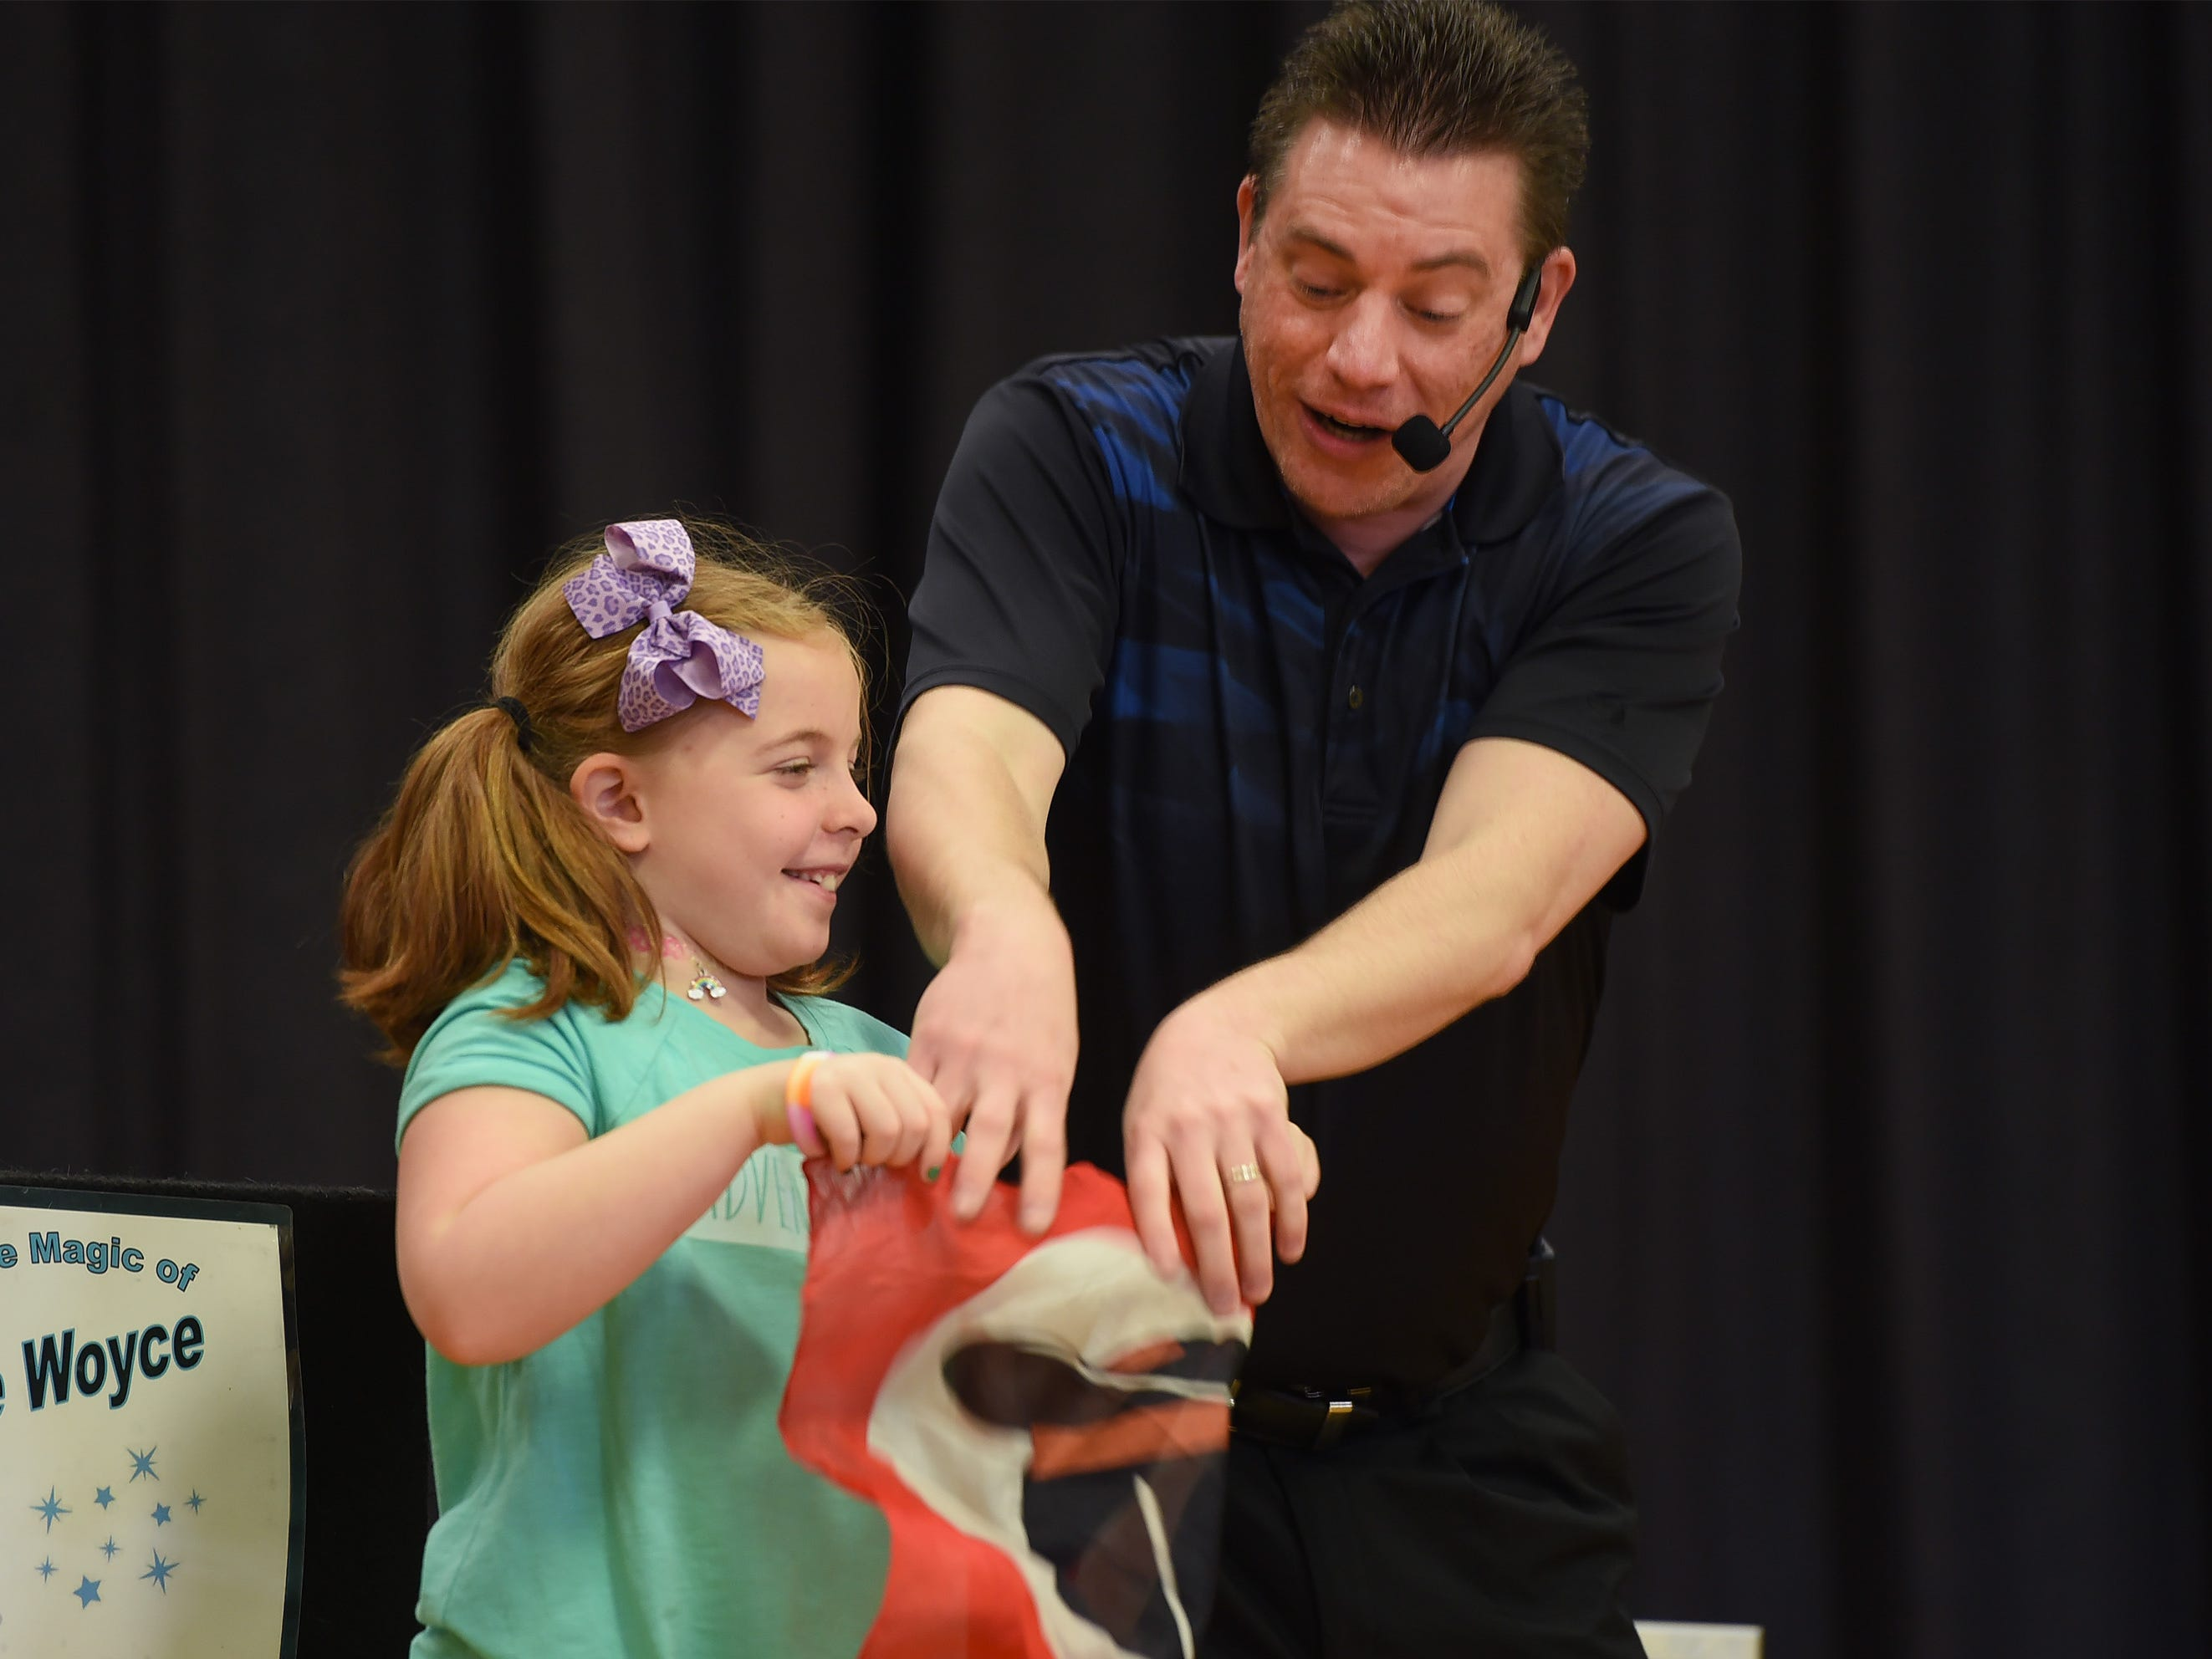 Magician Steve Woyce performs with the help of a little girl during the 3rd annual March Madness Food & Fun Day to benefit the Rutherford Food Pantry hosted by the Rutherford Education Association at Washington School in Rutherford on 03/23/2019.